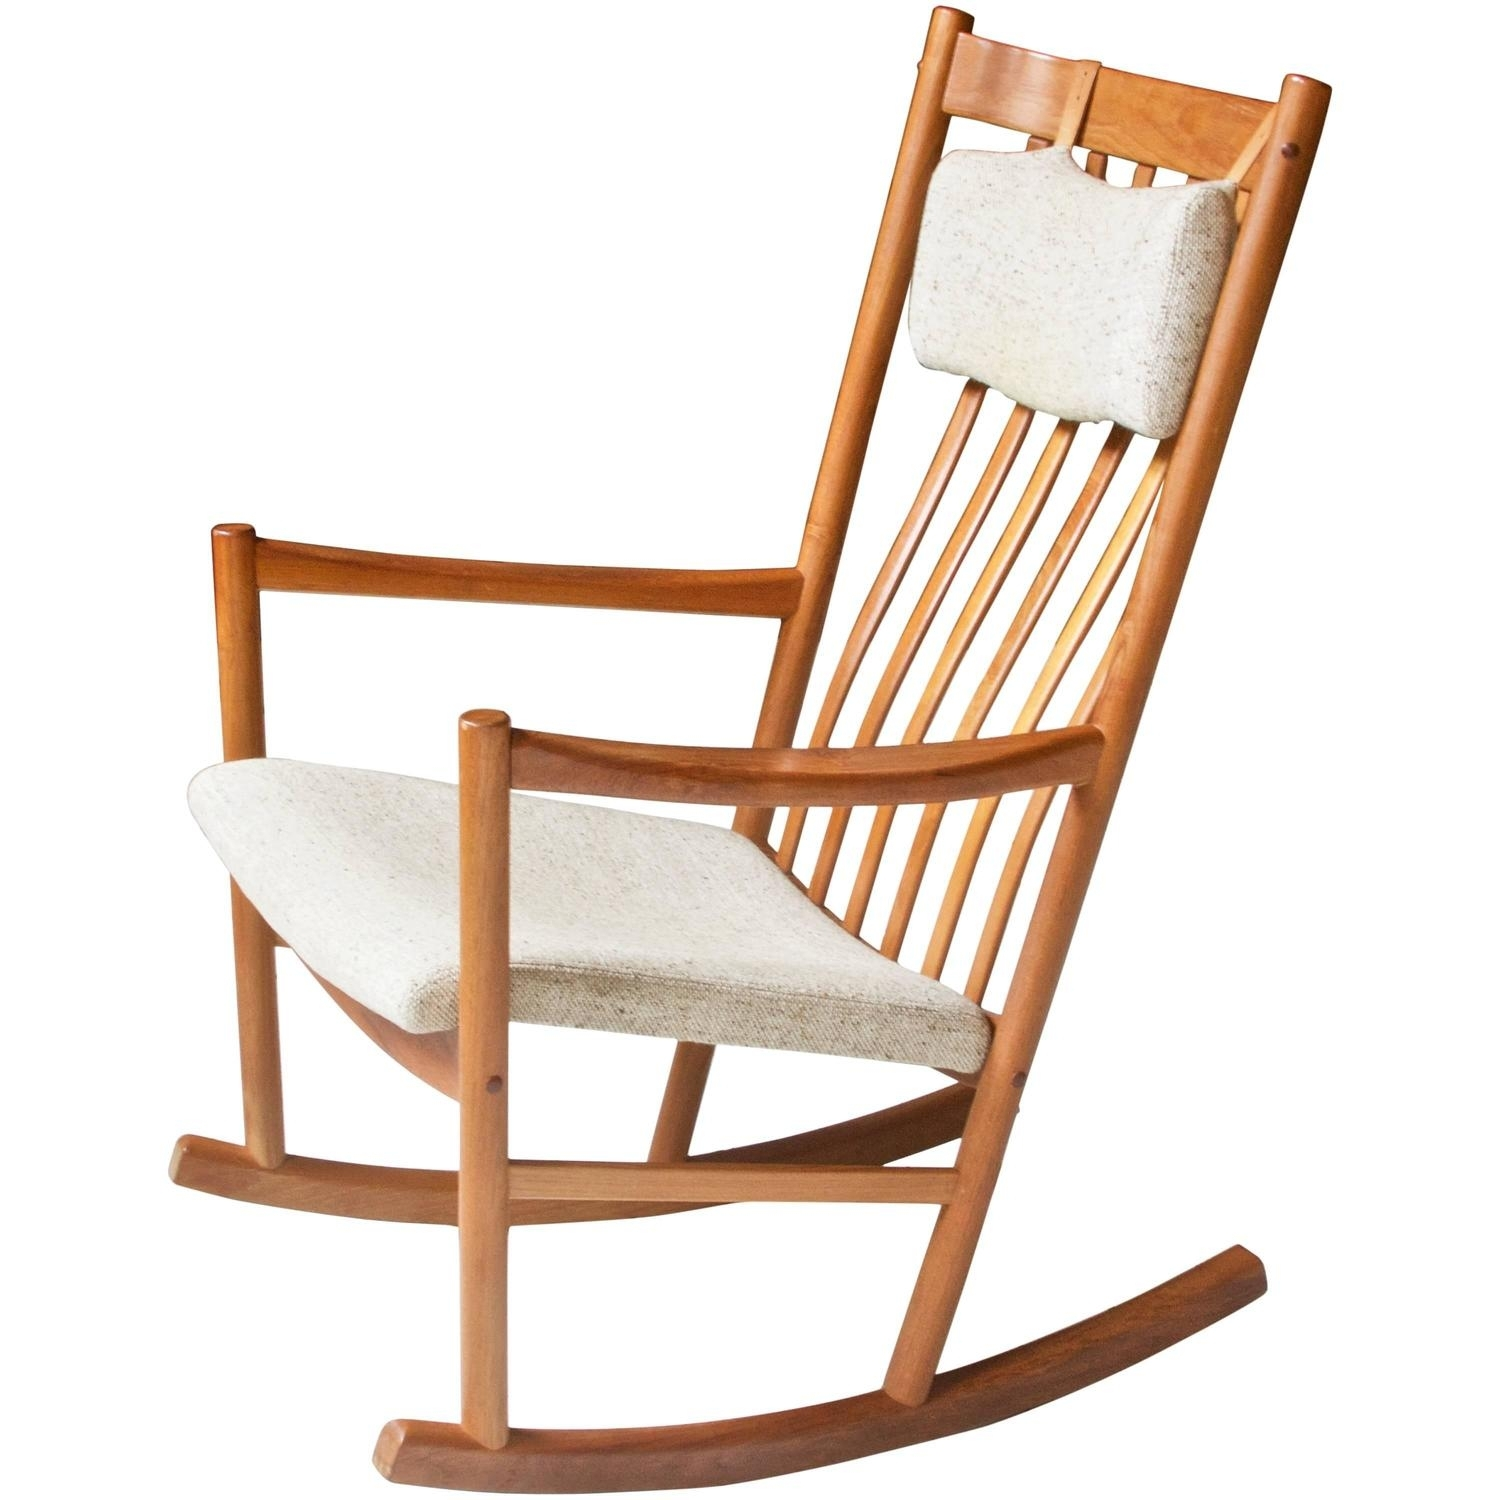 Teak Rocking Chair Sams Club F65X On Excellent Home Remodeling Ideas With Rocking Chairs At Sams Club (#14 of 15)